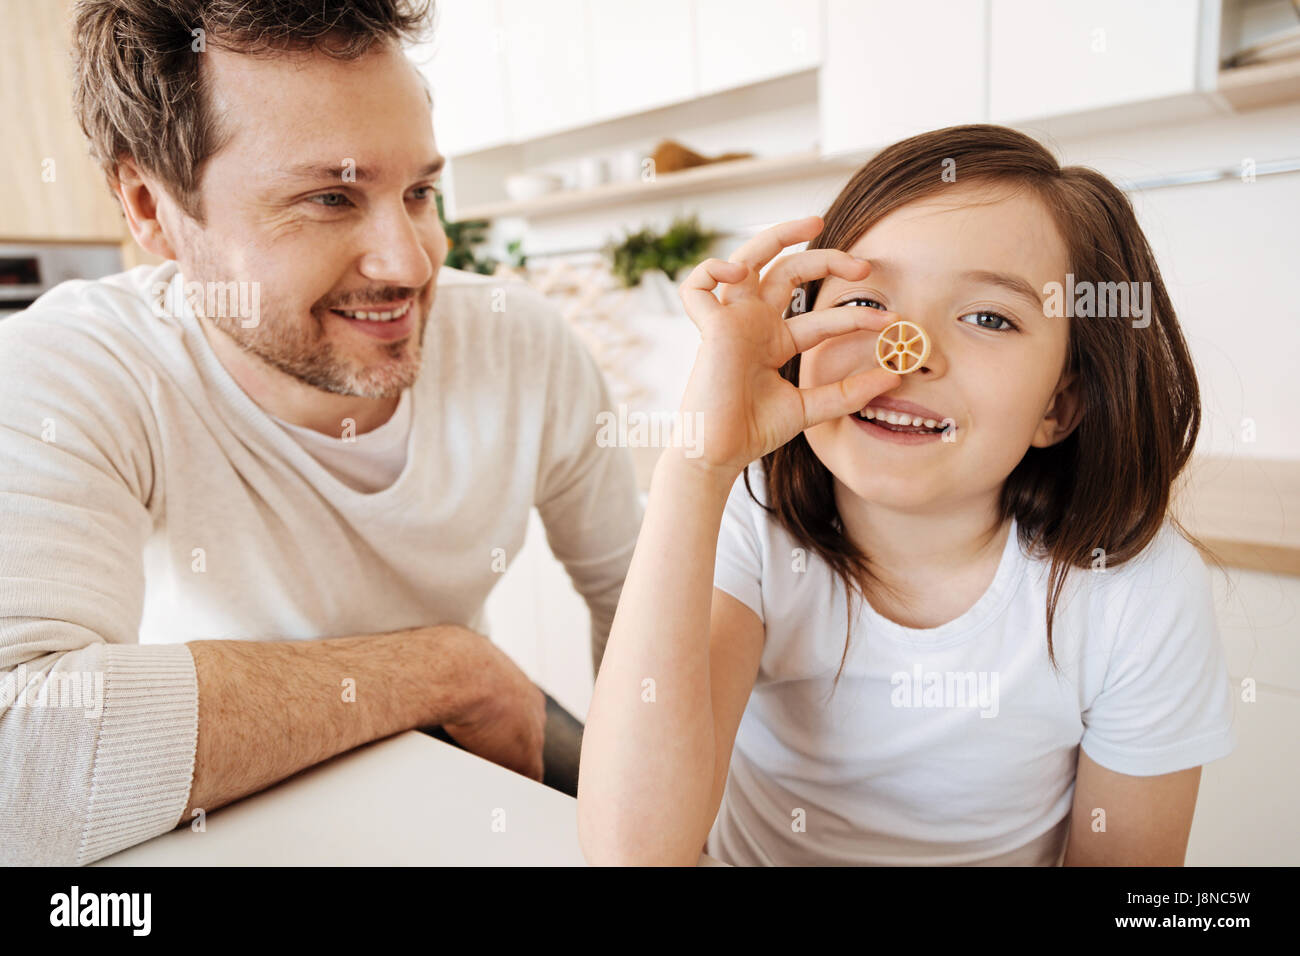 Fooling around. Cheerful cute girl goofing around by pressing a piece of wagon-wheel pasta to her nose while her - Stock Image